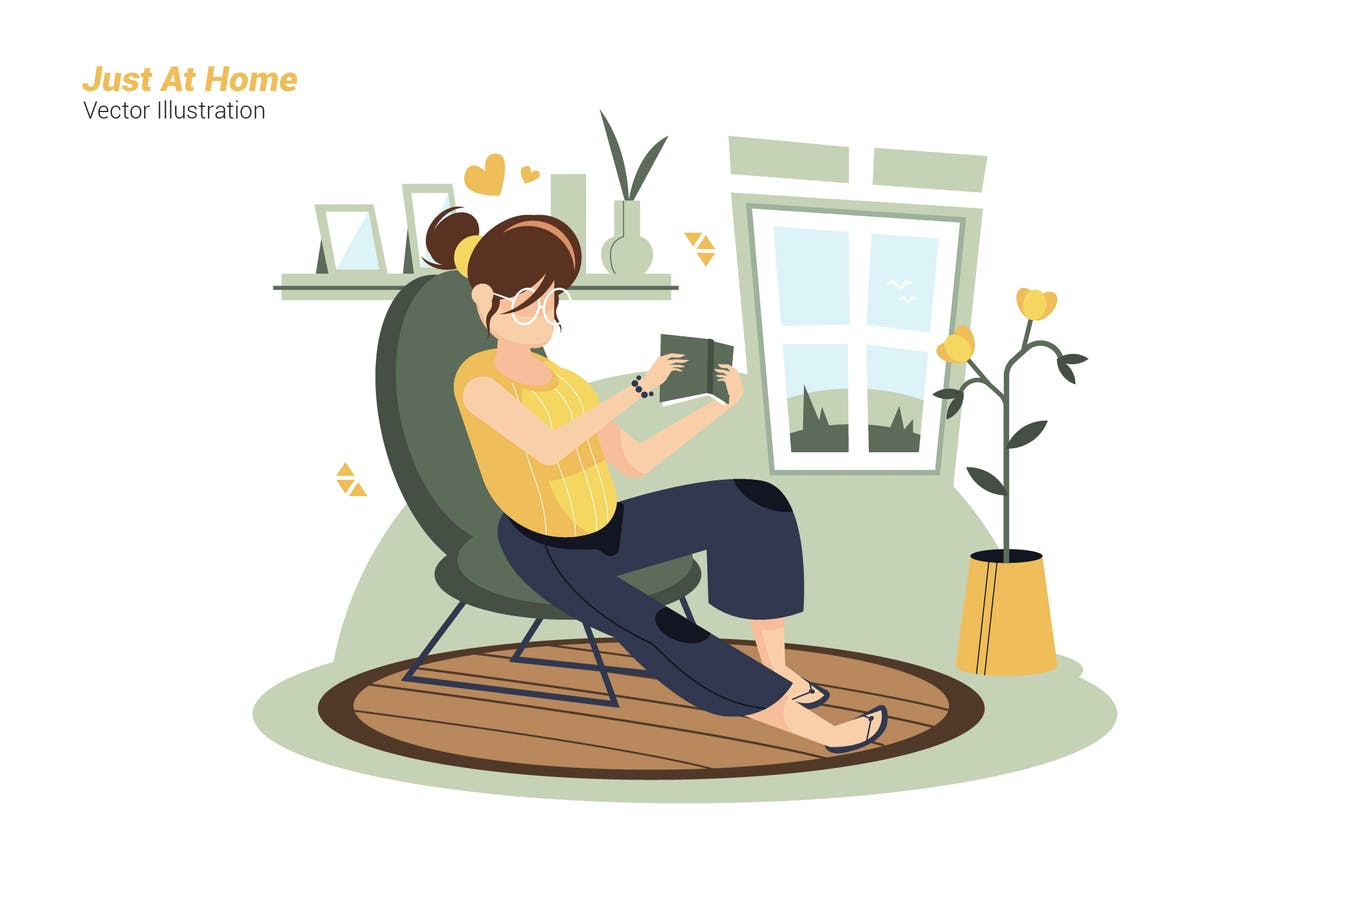 Just At Home - Vector Illustration